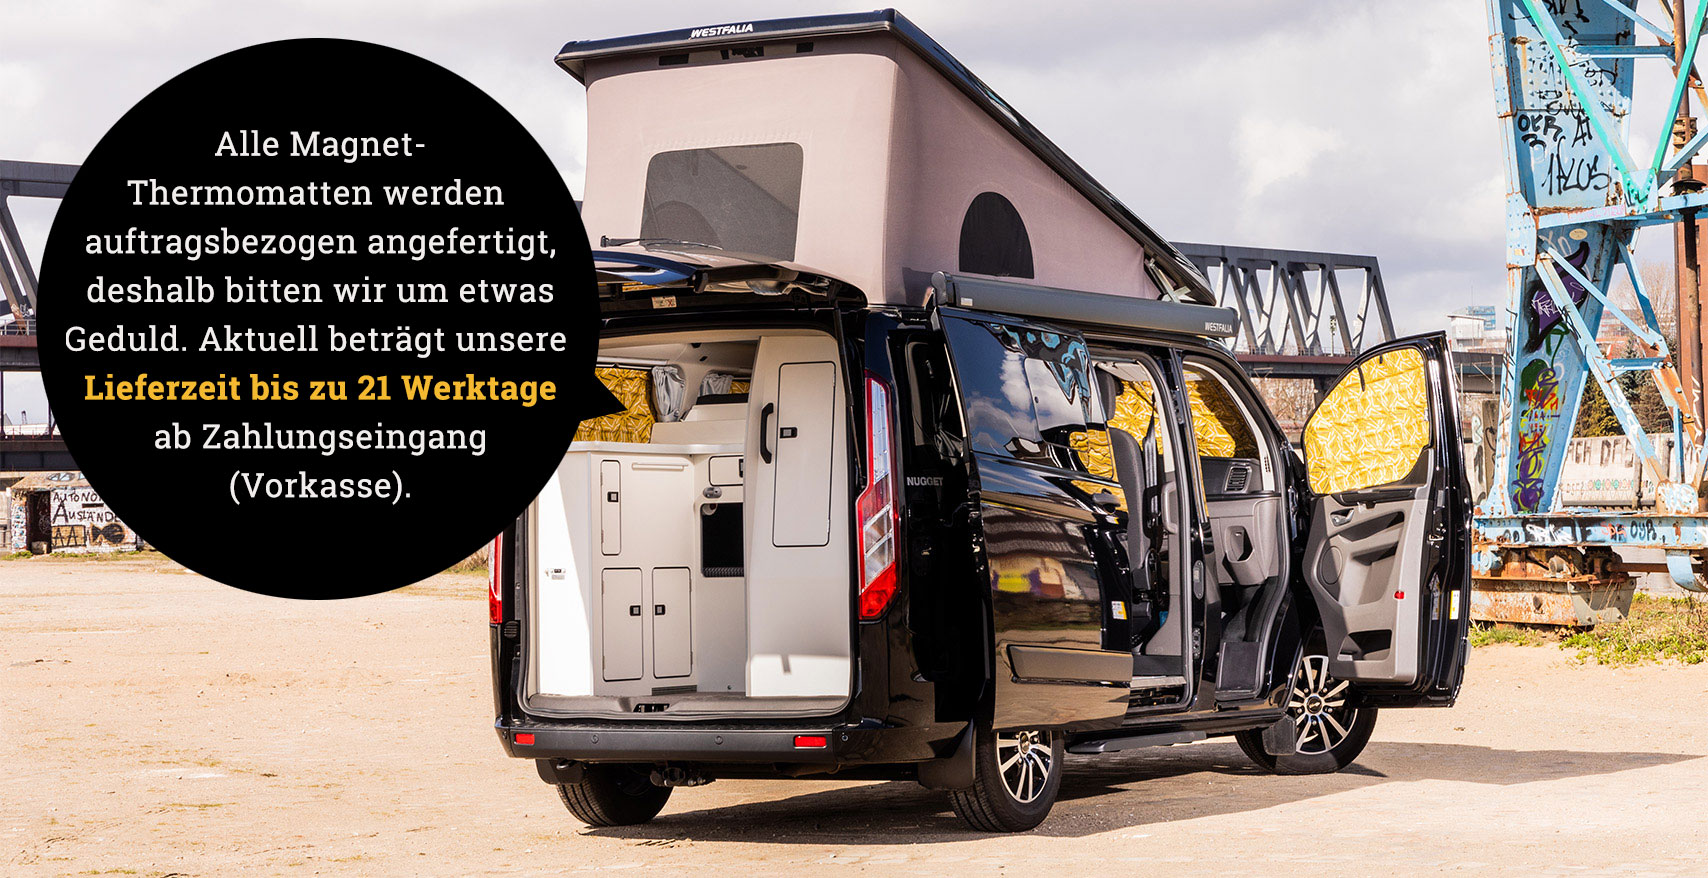 Project Camper Magnet-Thermomatten Ford Transit Nugget Funky Beach Lieferzeit